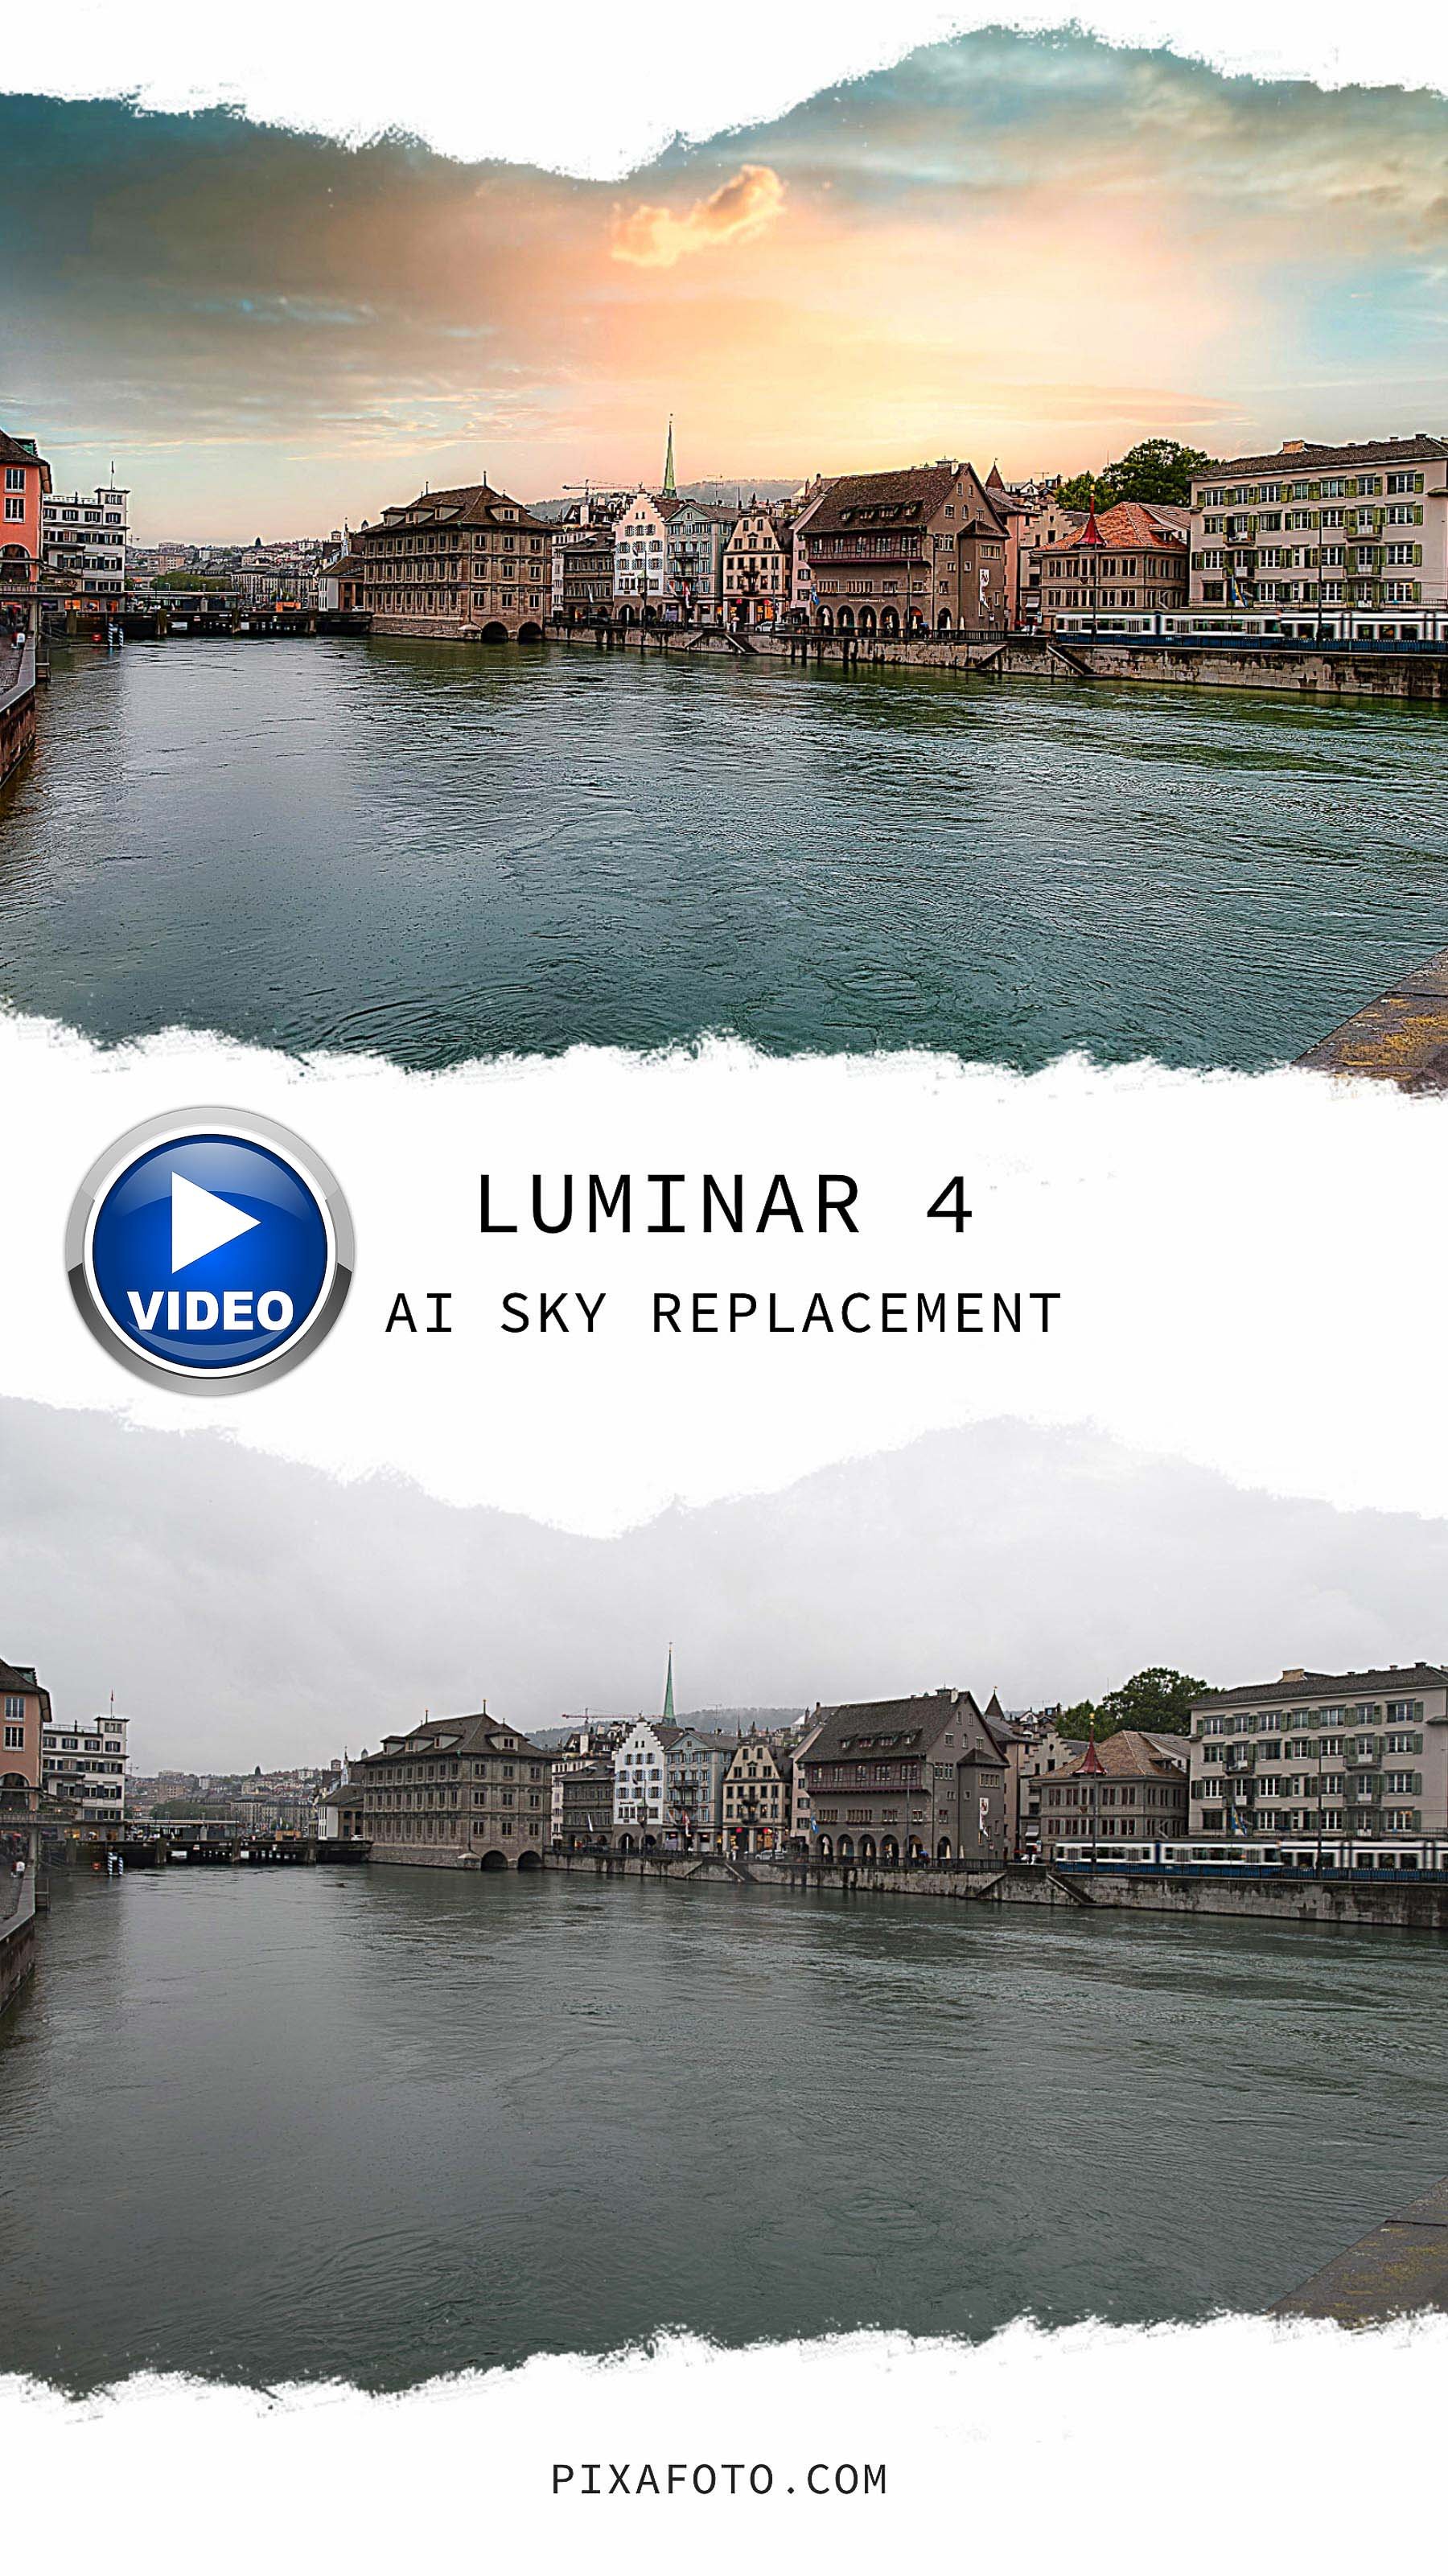 Luminar 4 AI Sky Replacement VIDEO